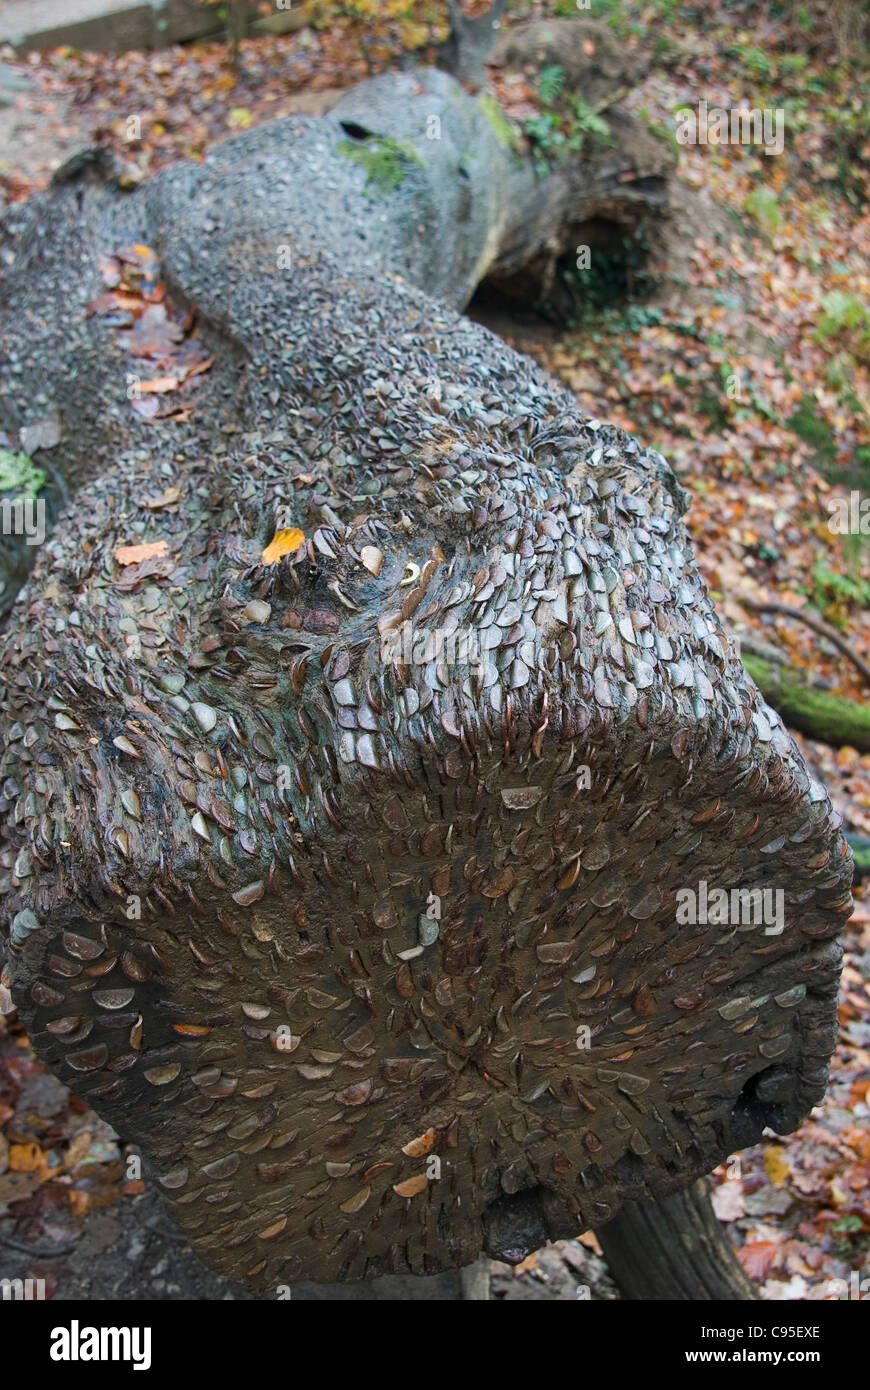 Coins in log in Strid Woods, or a 'Wish Tree' Stock Photo